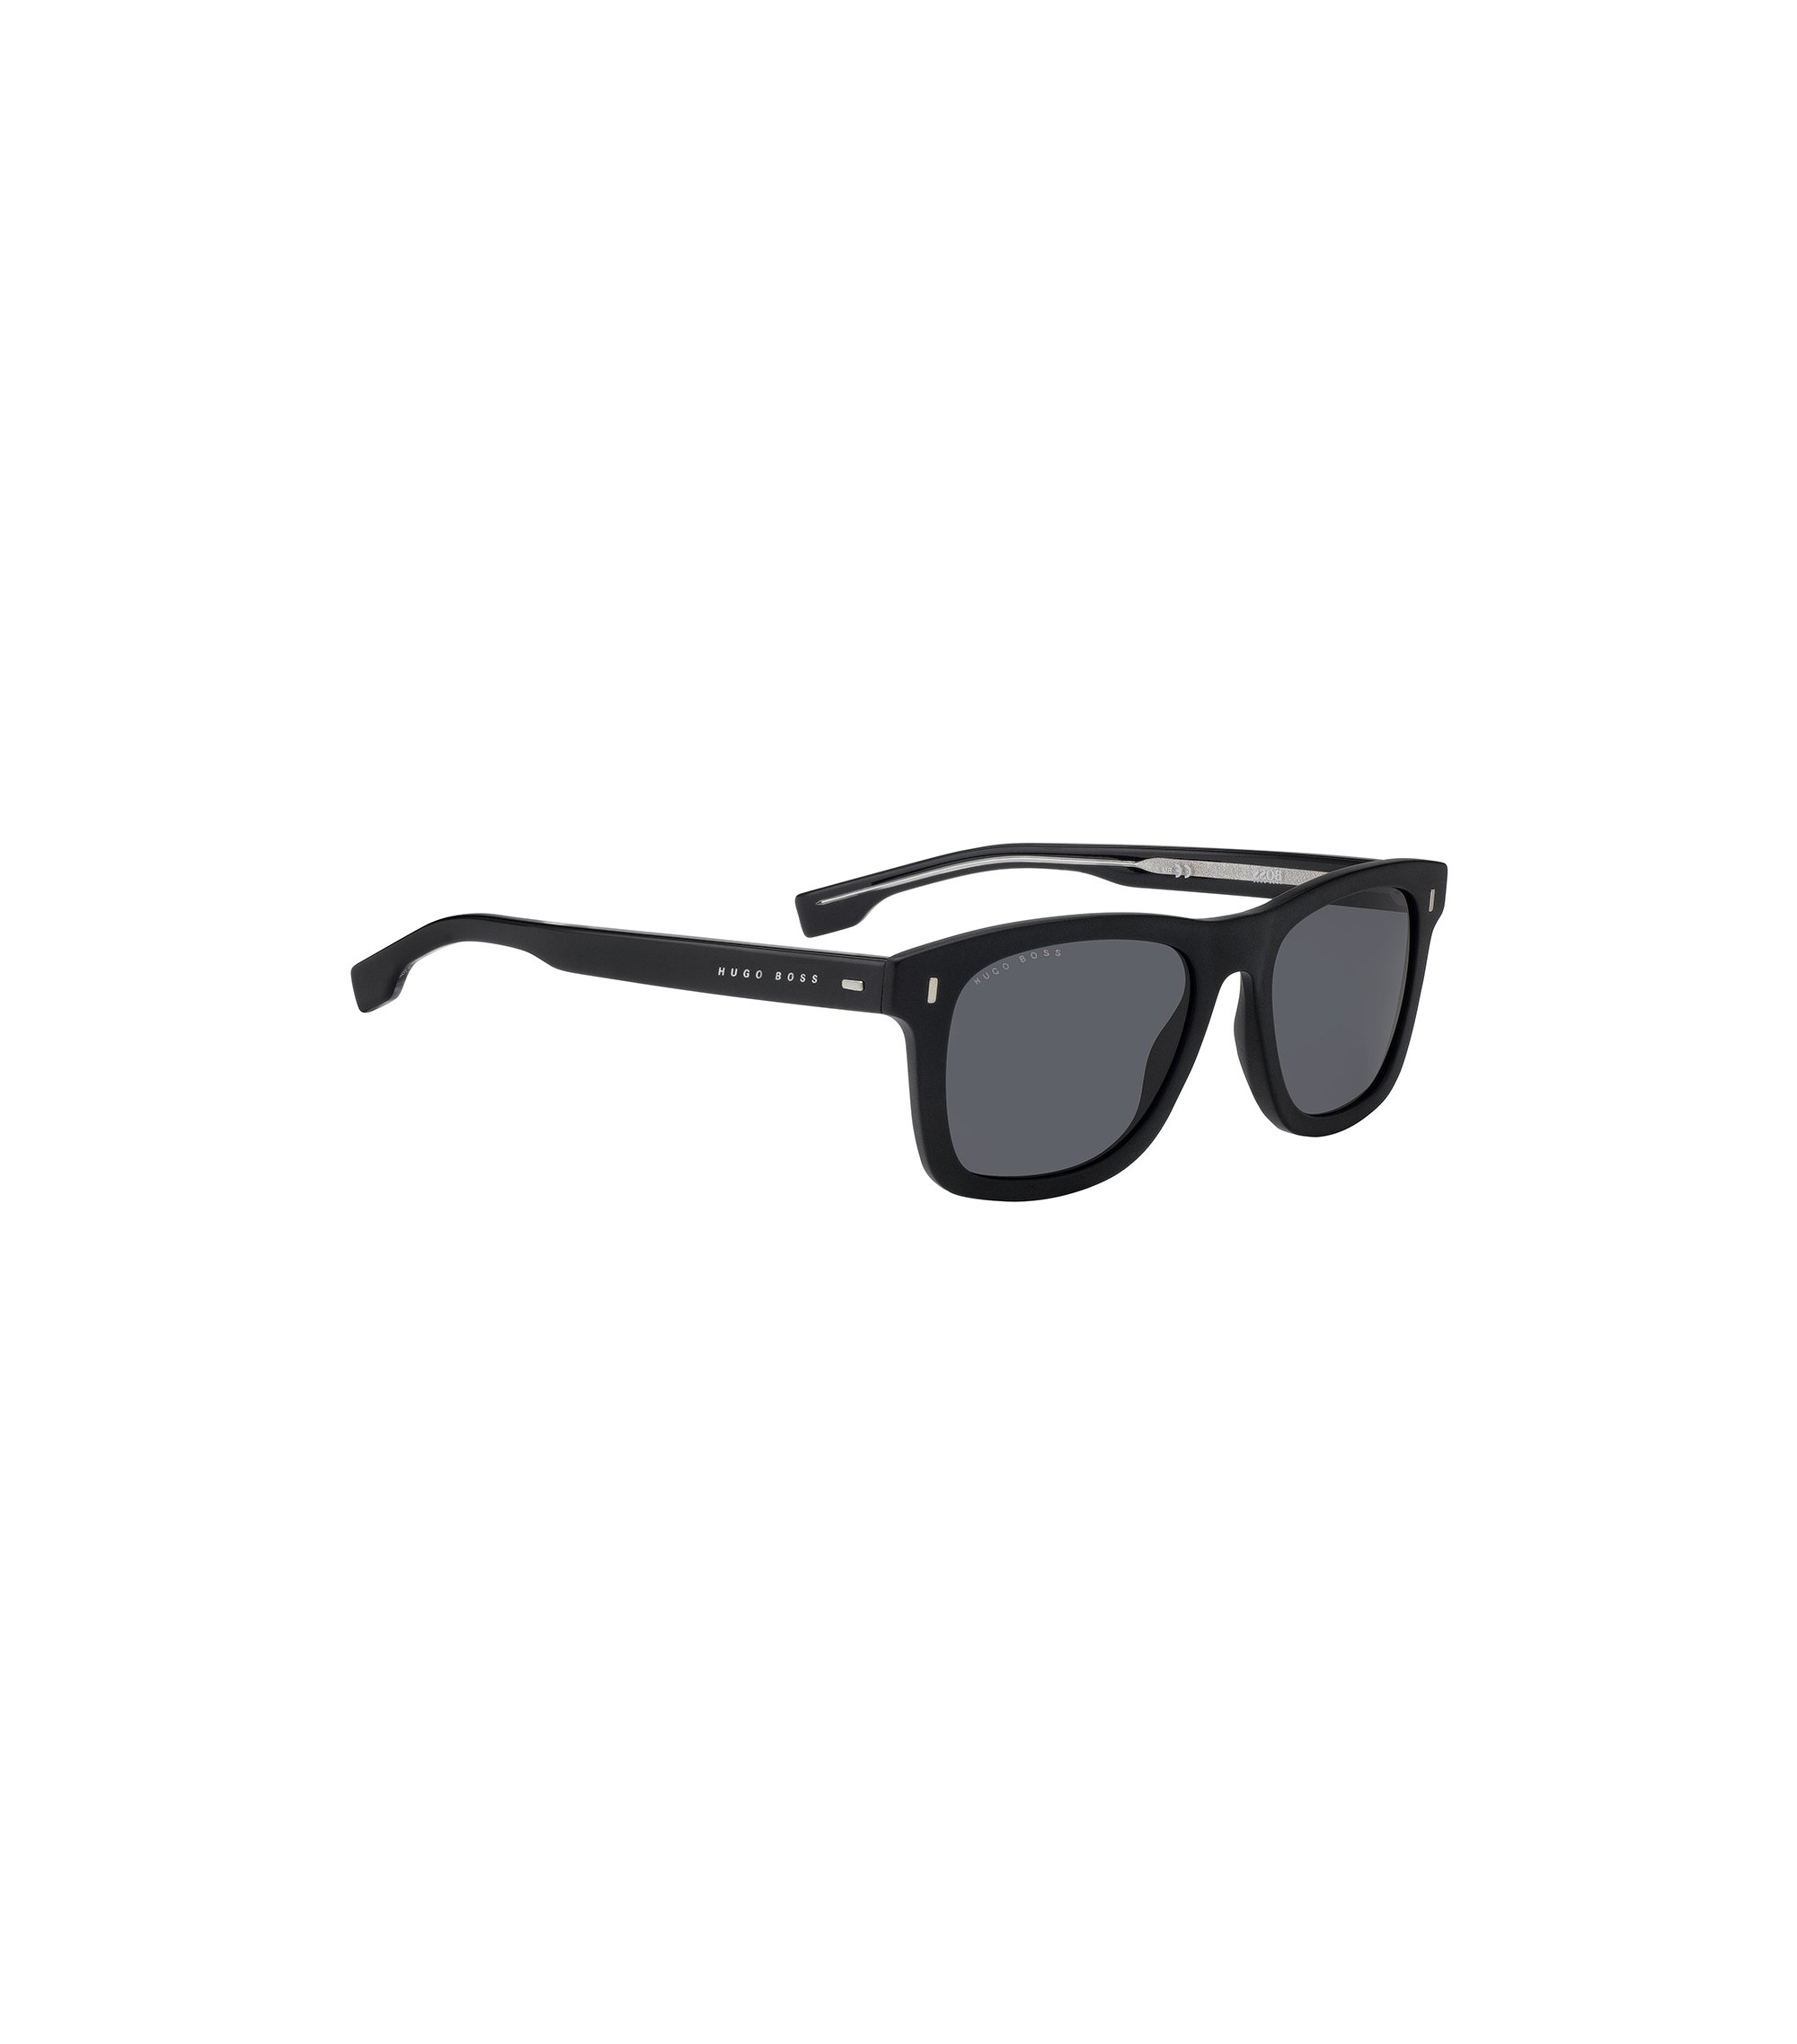 Wayfarer-inspired sunglasses in high-density acetate, Assorted-Pre-Pack